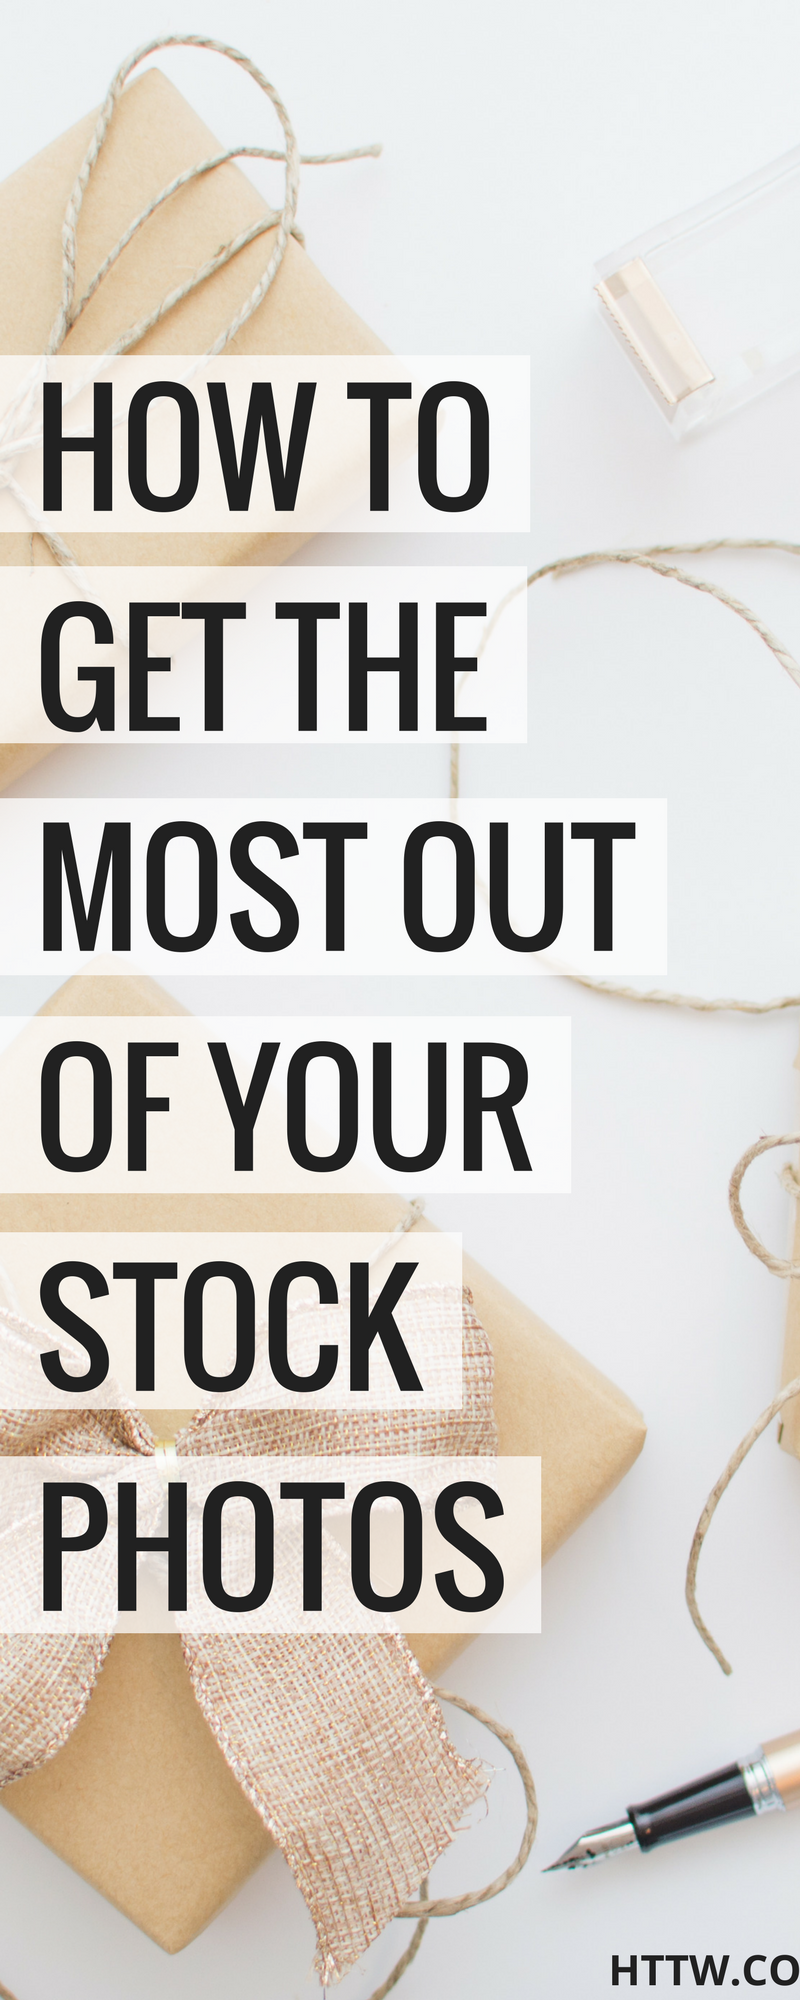 How to get the most out of your stock photos. #stockphoto ideas Heart take the Wheel